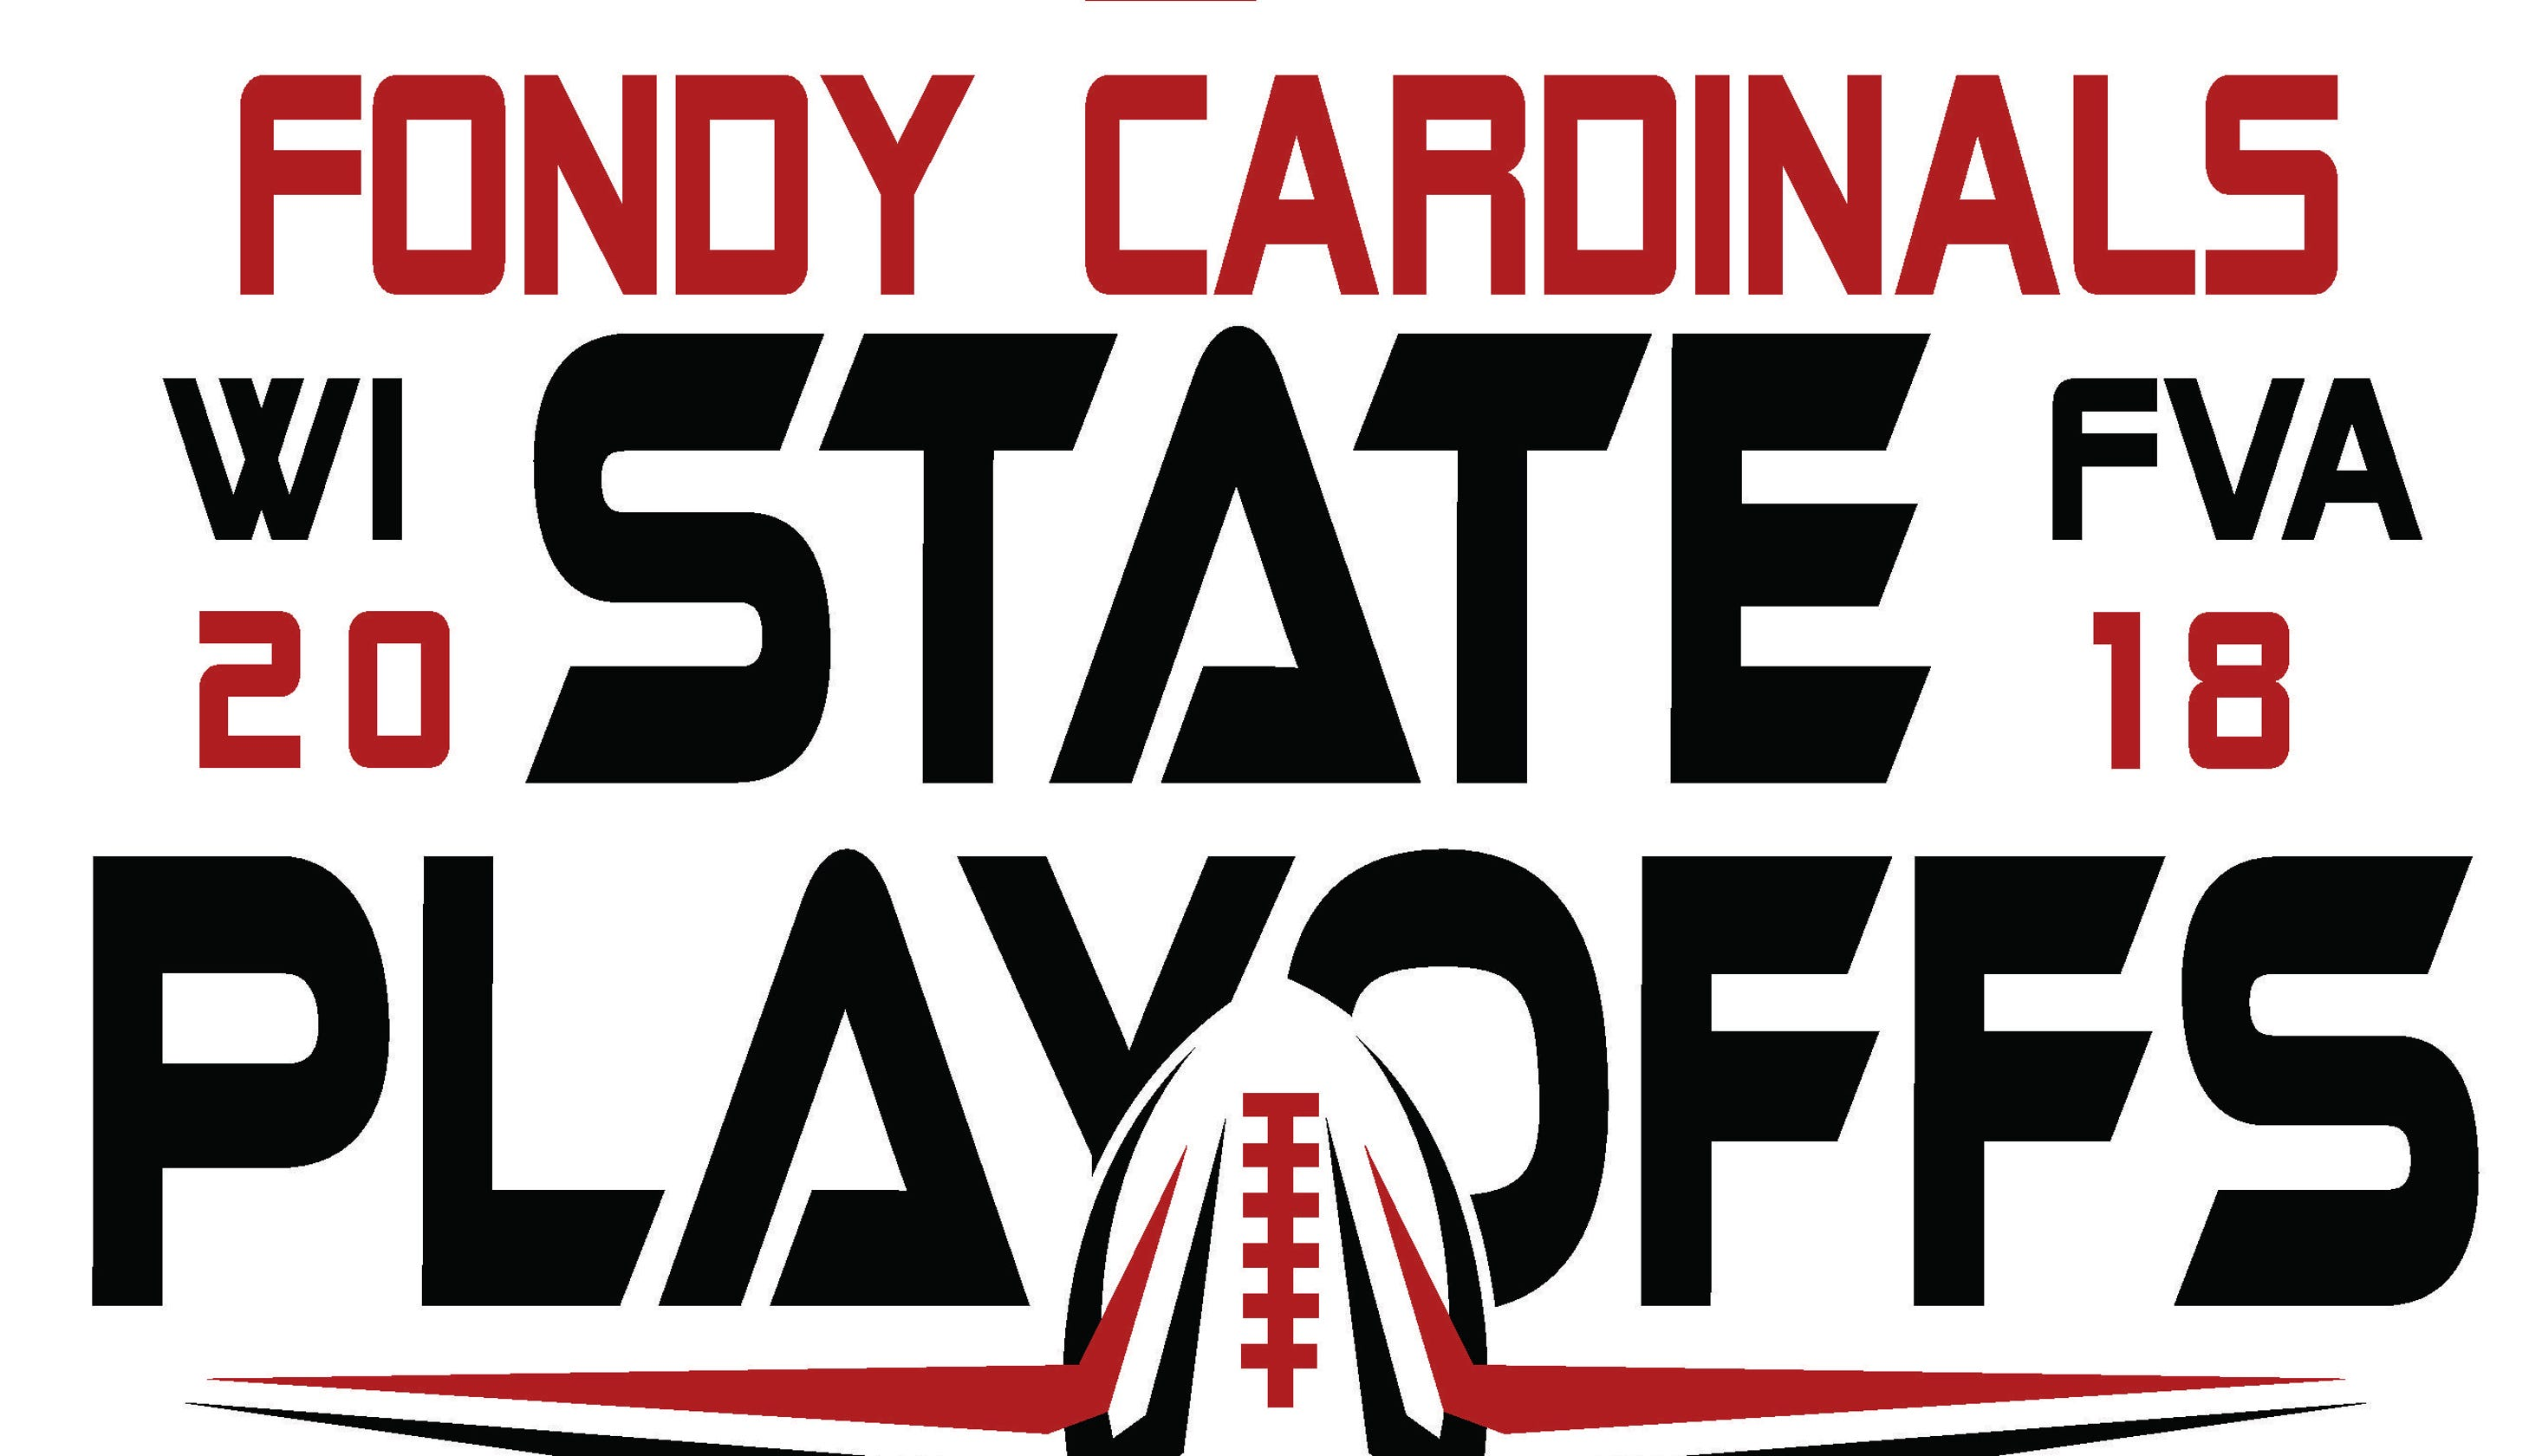 769926ad FHS Cardinal's Nest creates Fondy football playoff shirts for fans